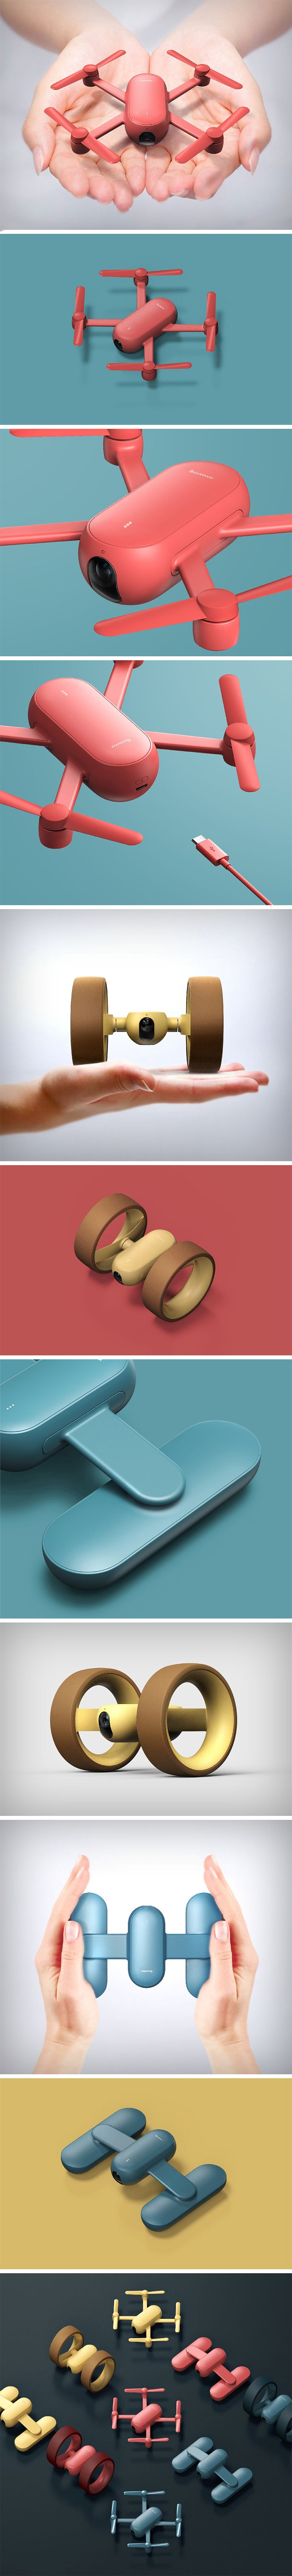 1029 best Product Ideas images on Pinterest | Product design, For ...